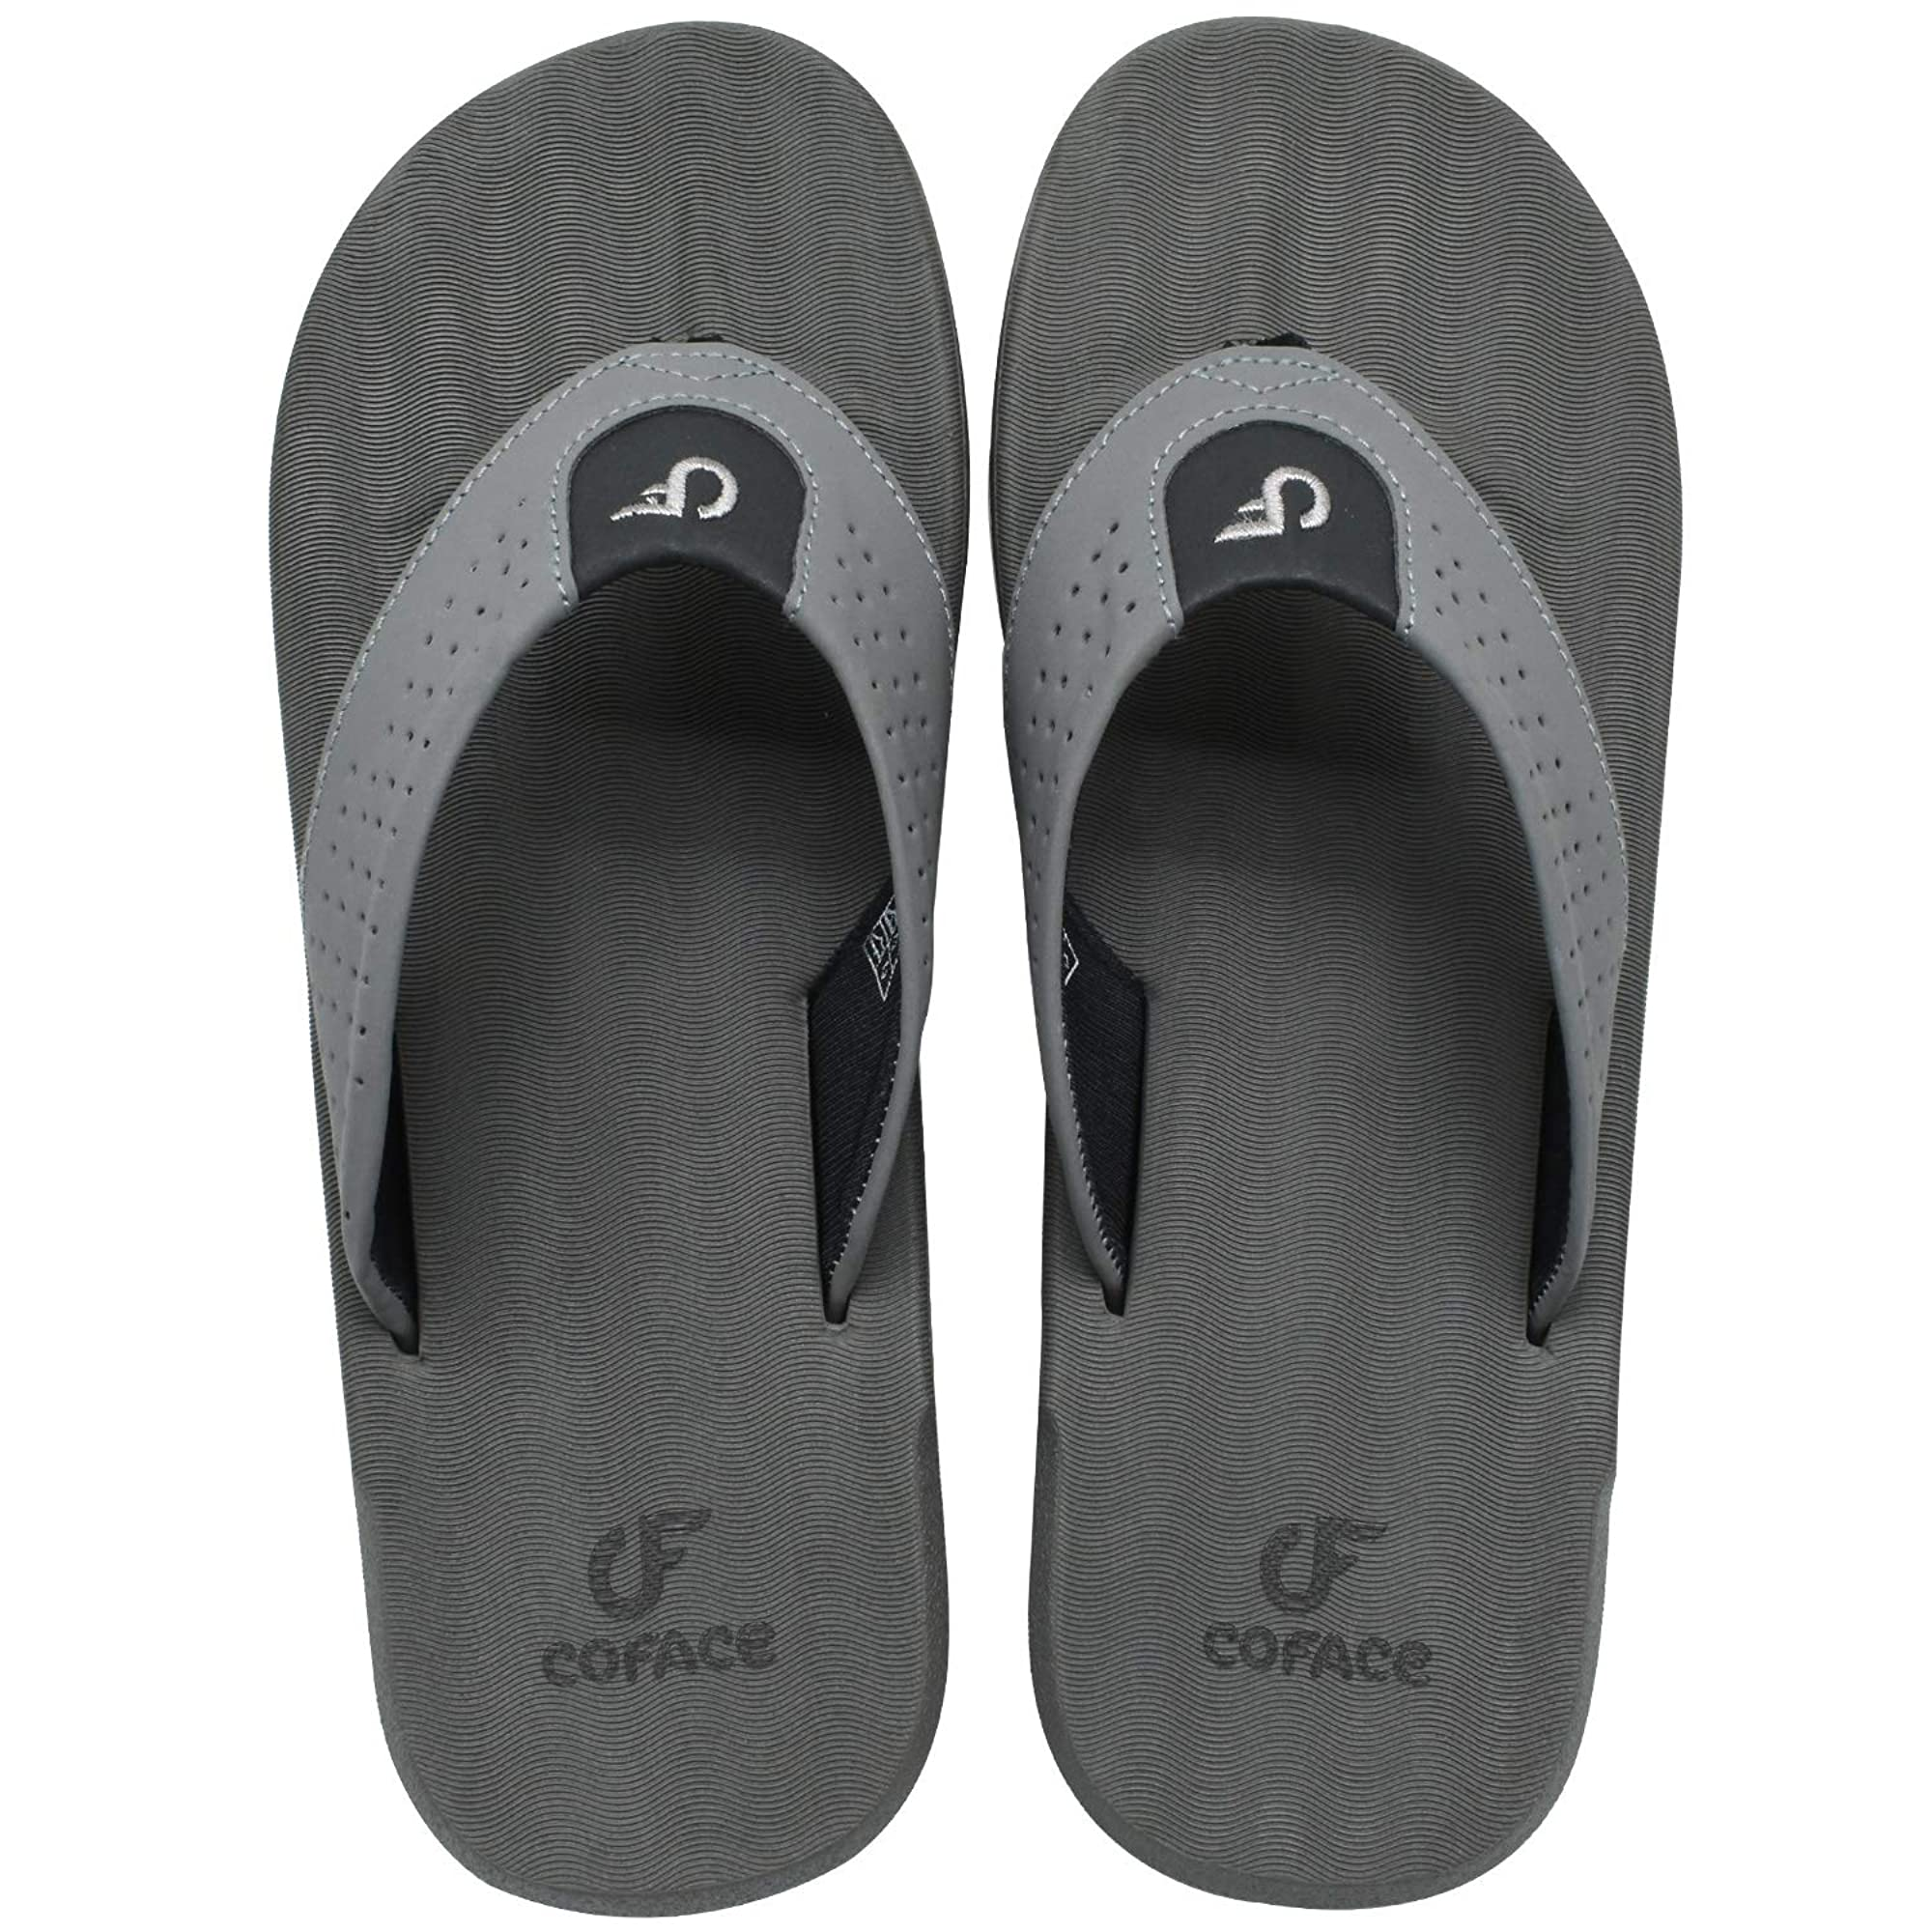 Casual Flip-Flop Sandals For Men